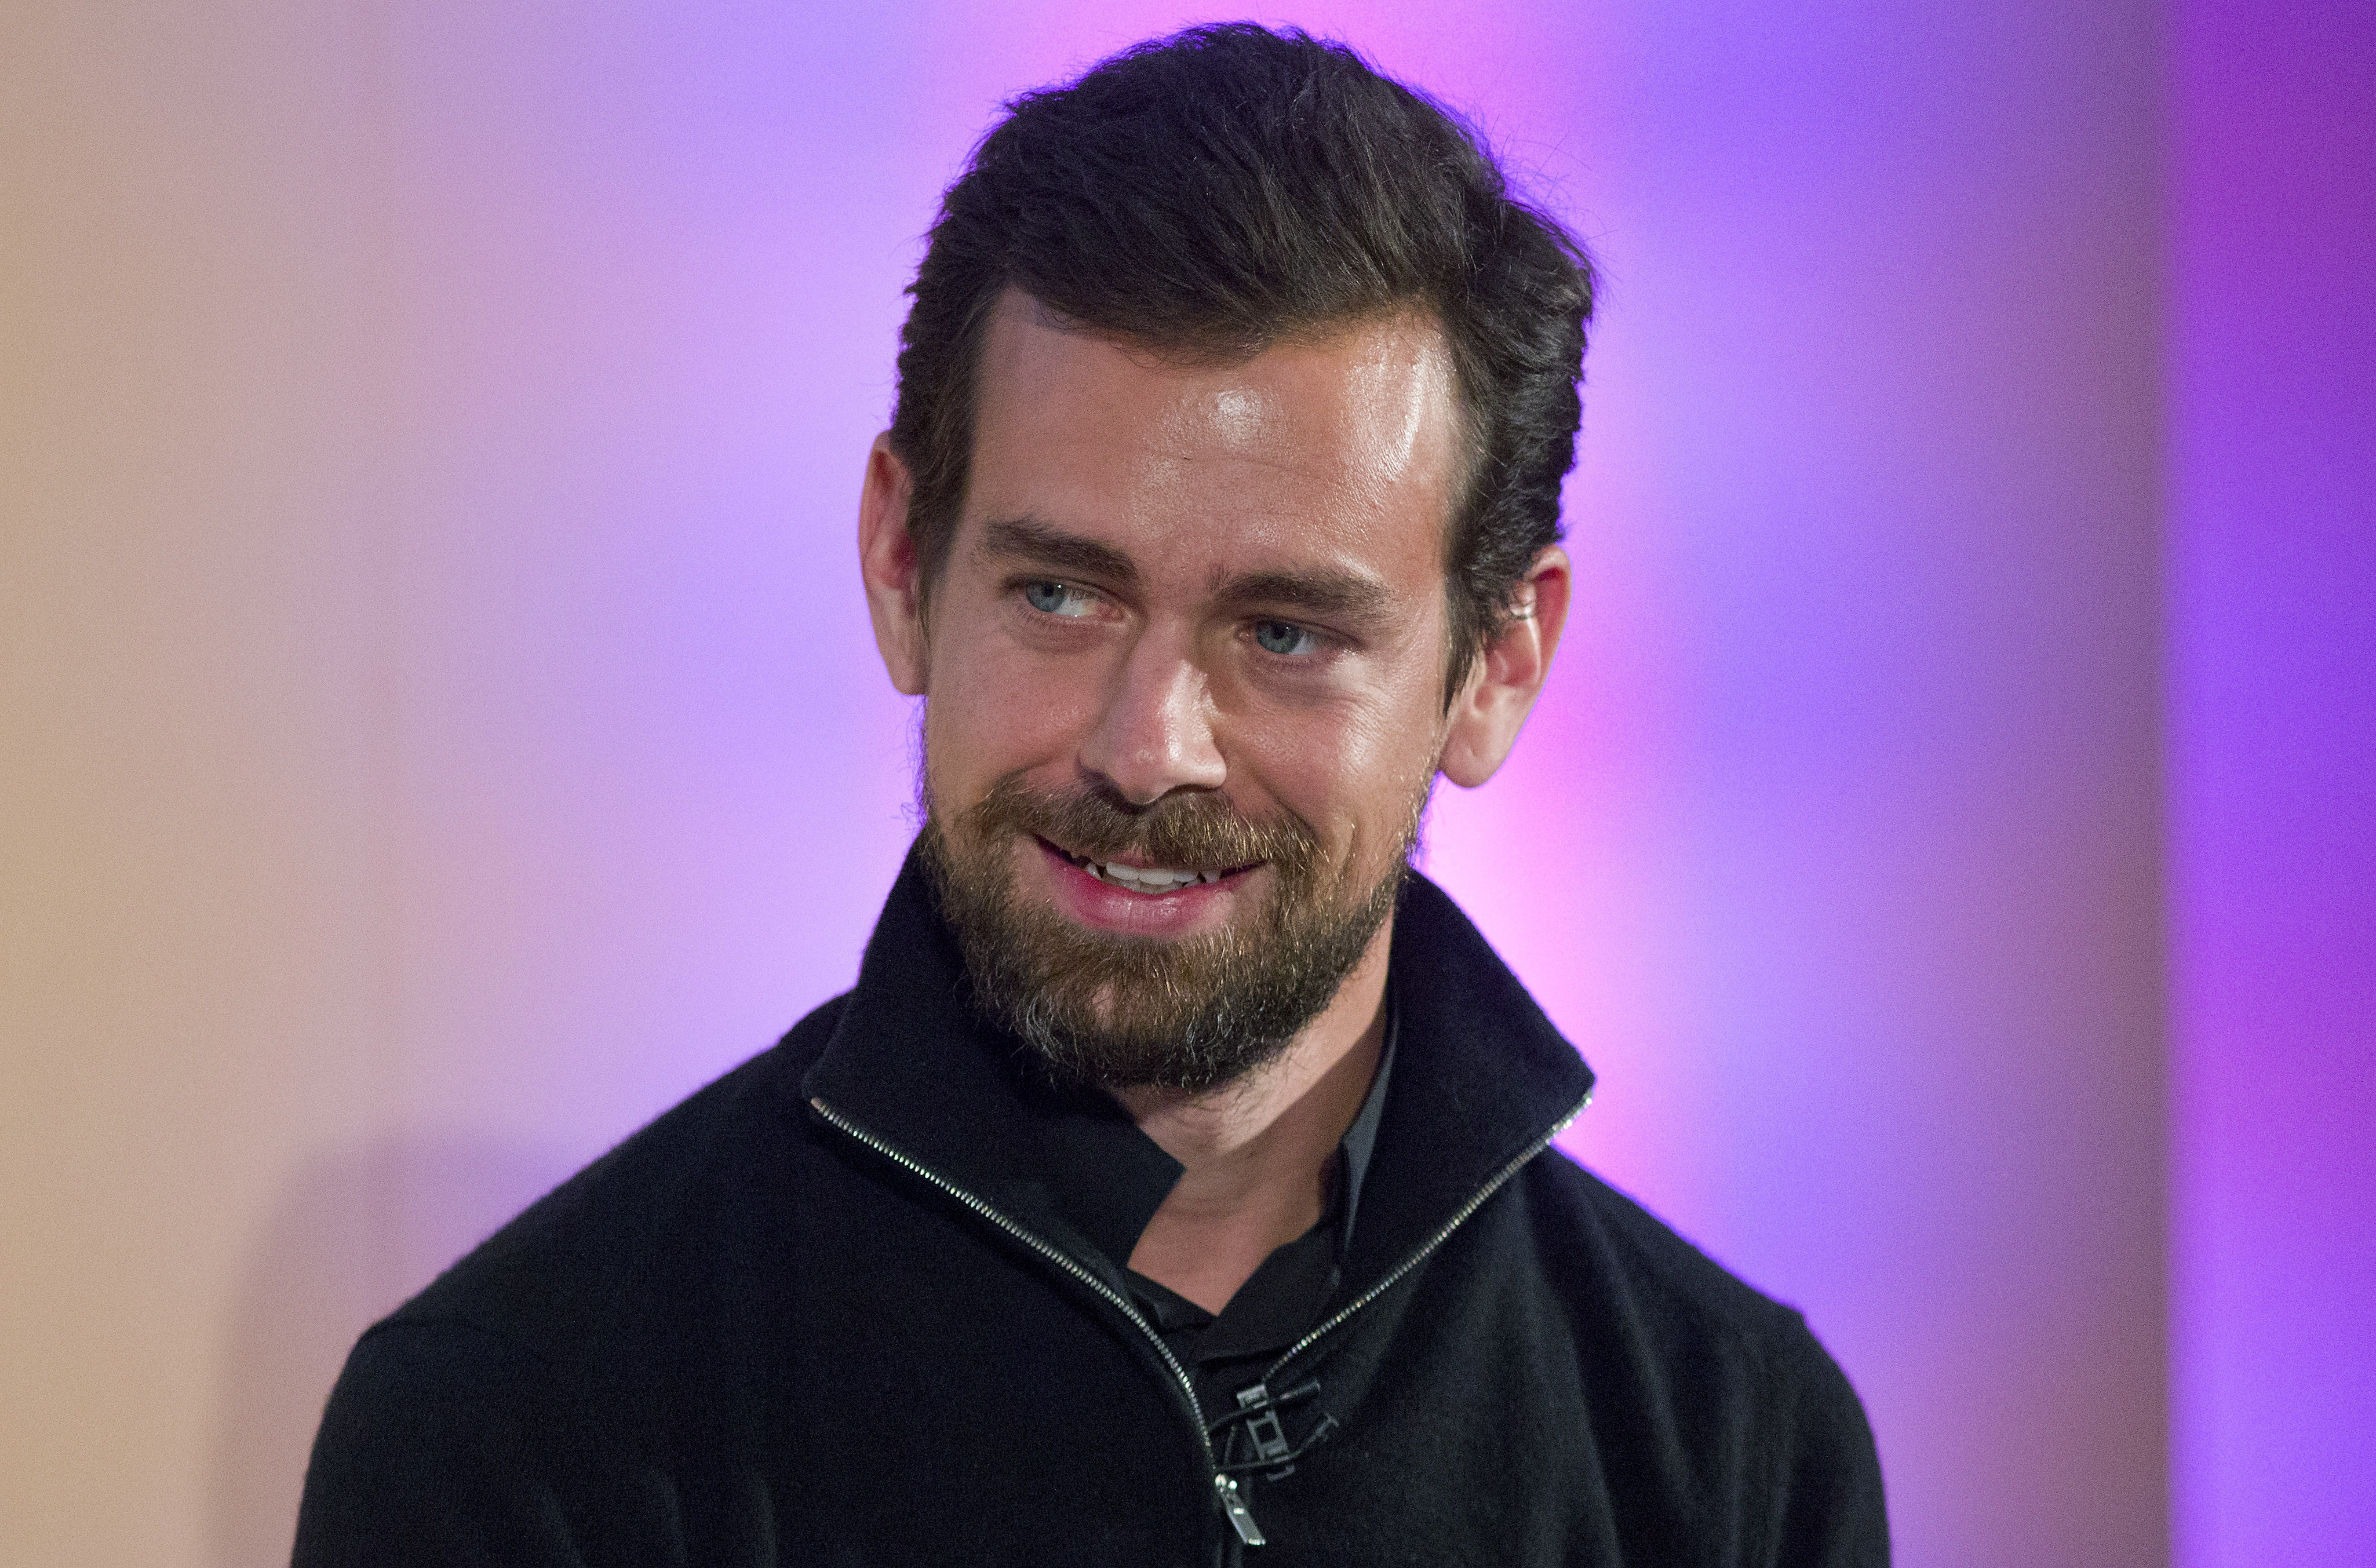 Jack Dorsey, CEO of Twitter, holds an event in London on Nov. 20, 2014.